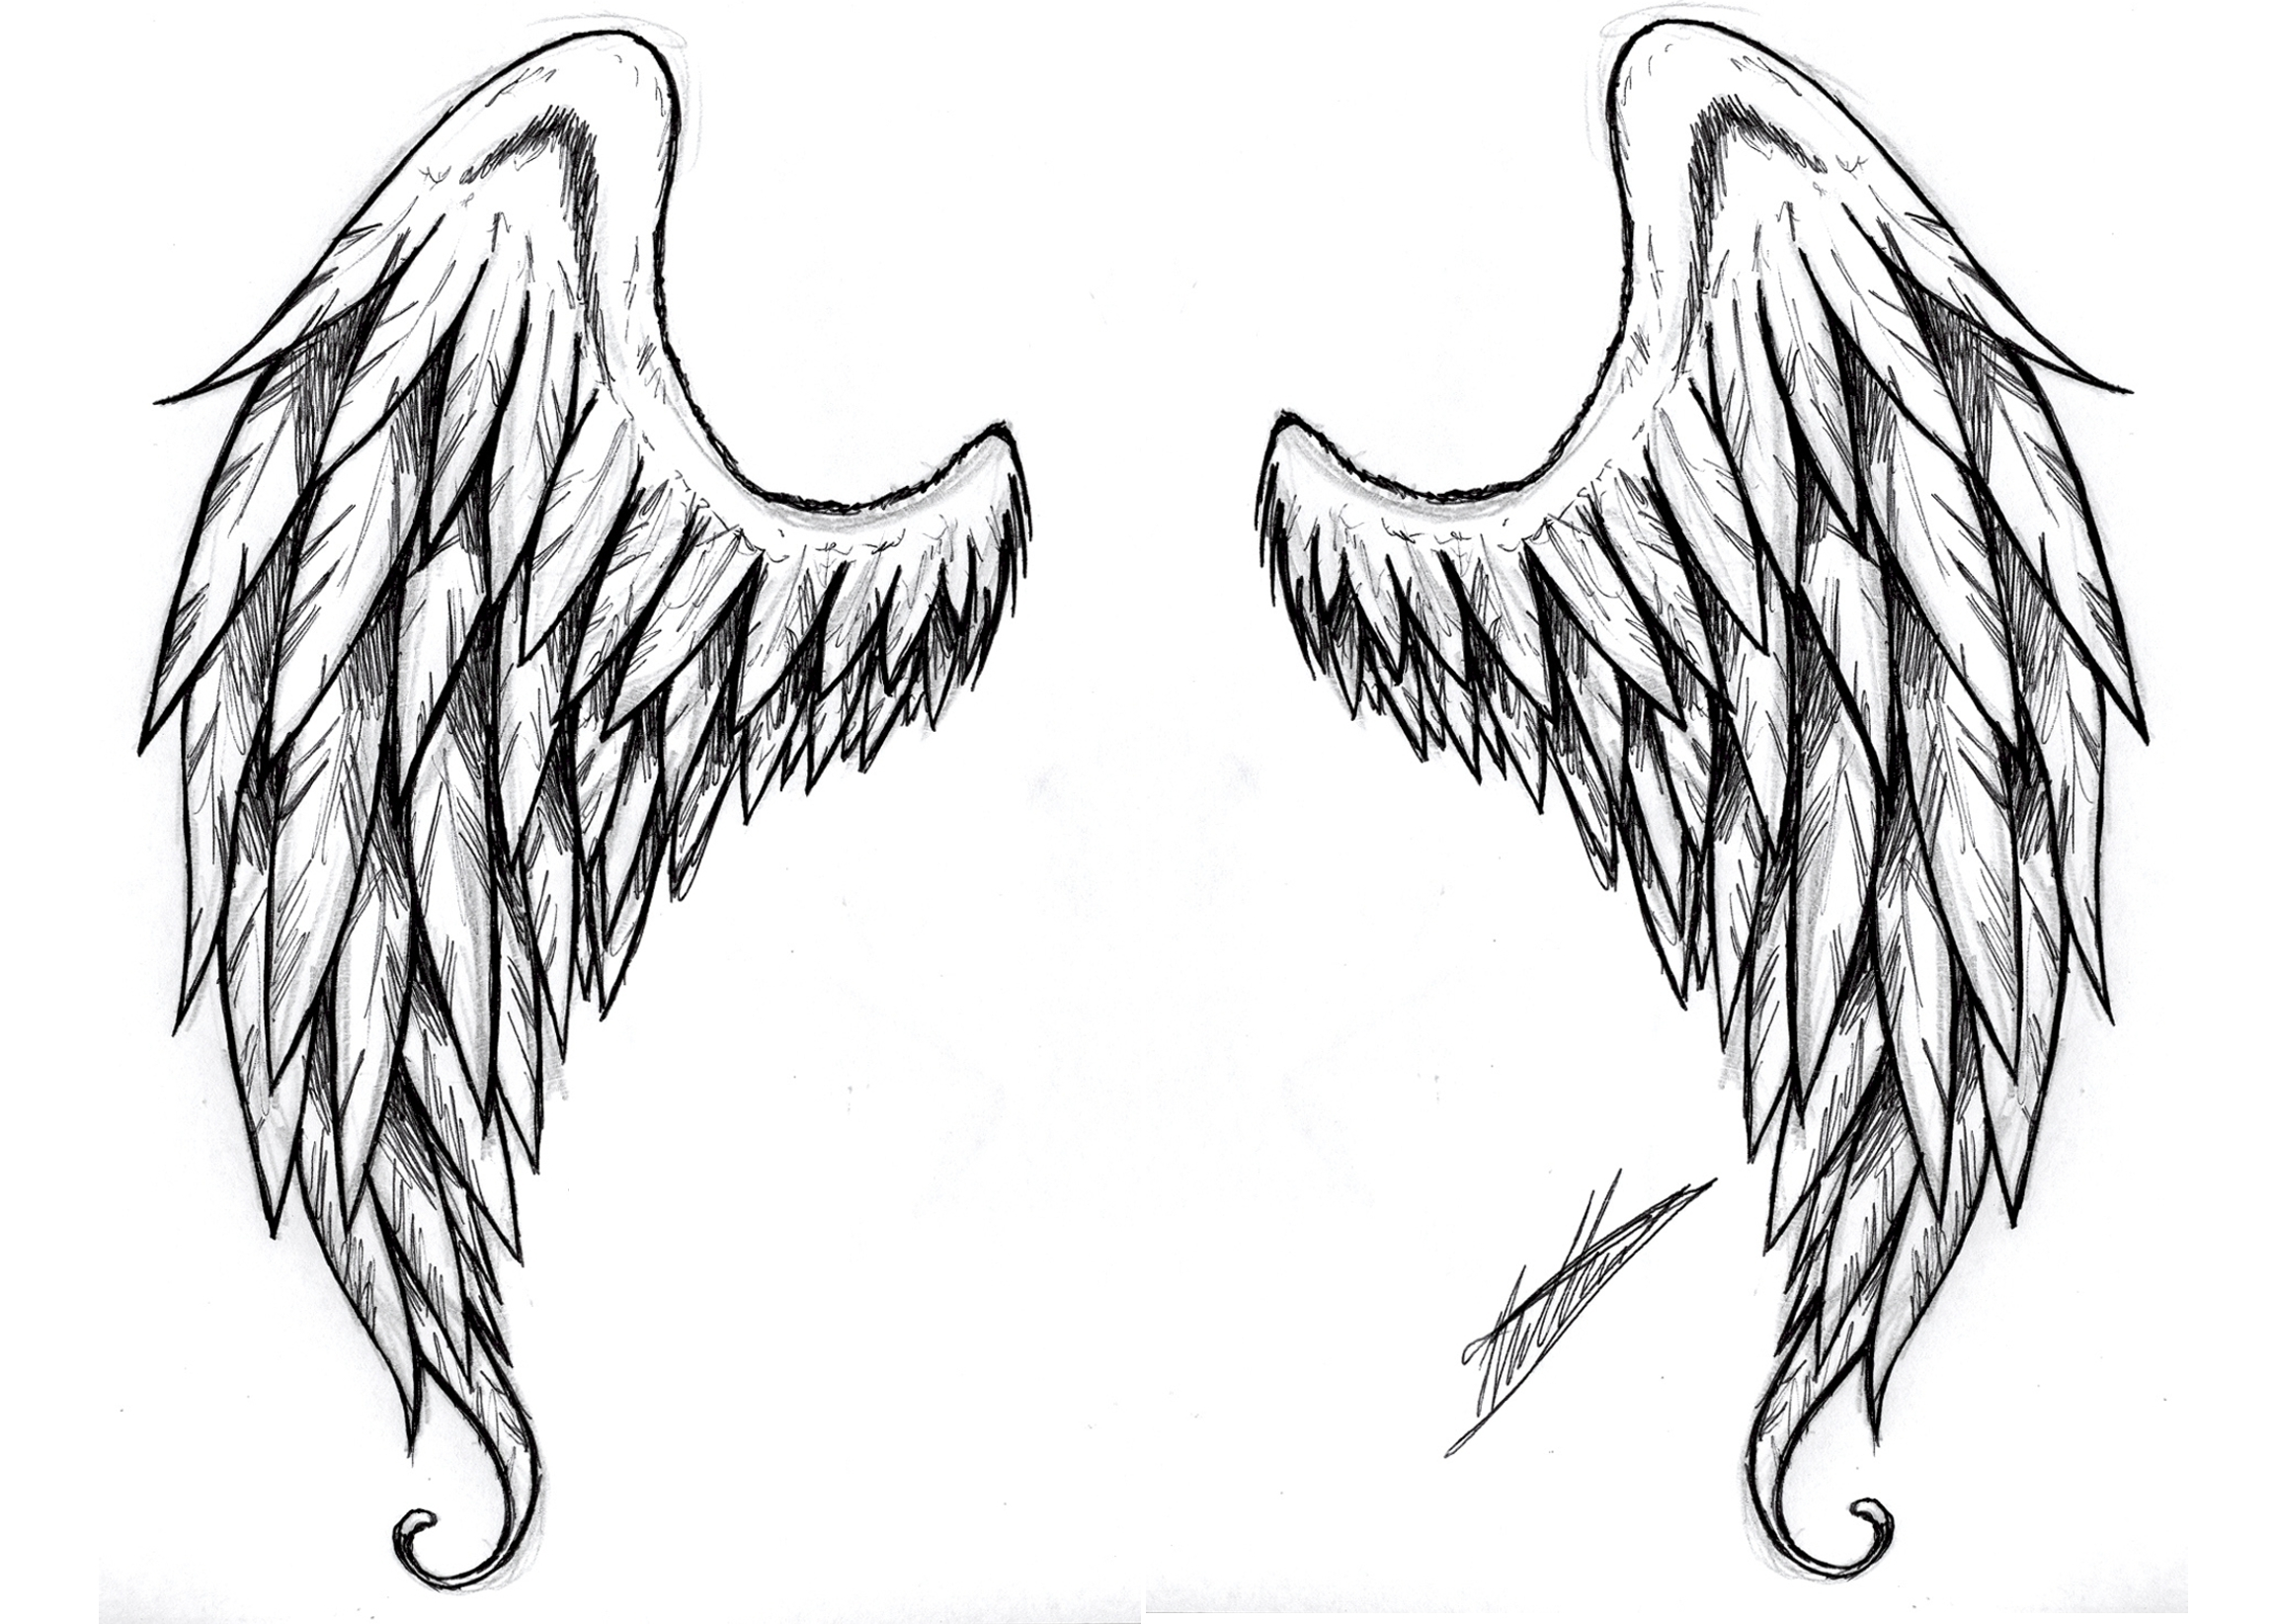 image angel and demon wings tattoos tattoo designs d v wonderpad wiki. Black Bedroom Furniture Sets. Home Design Ideas